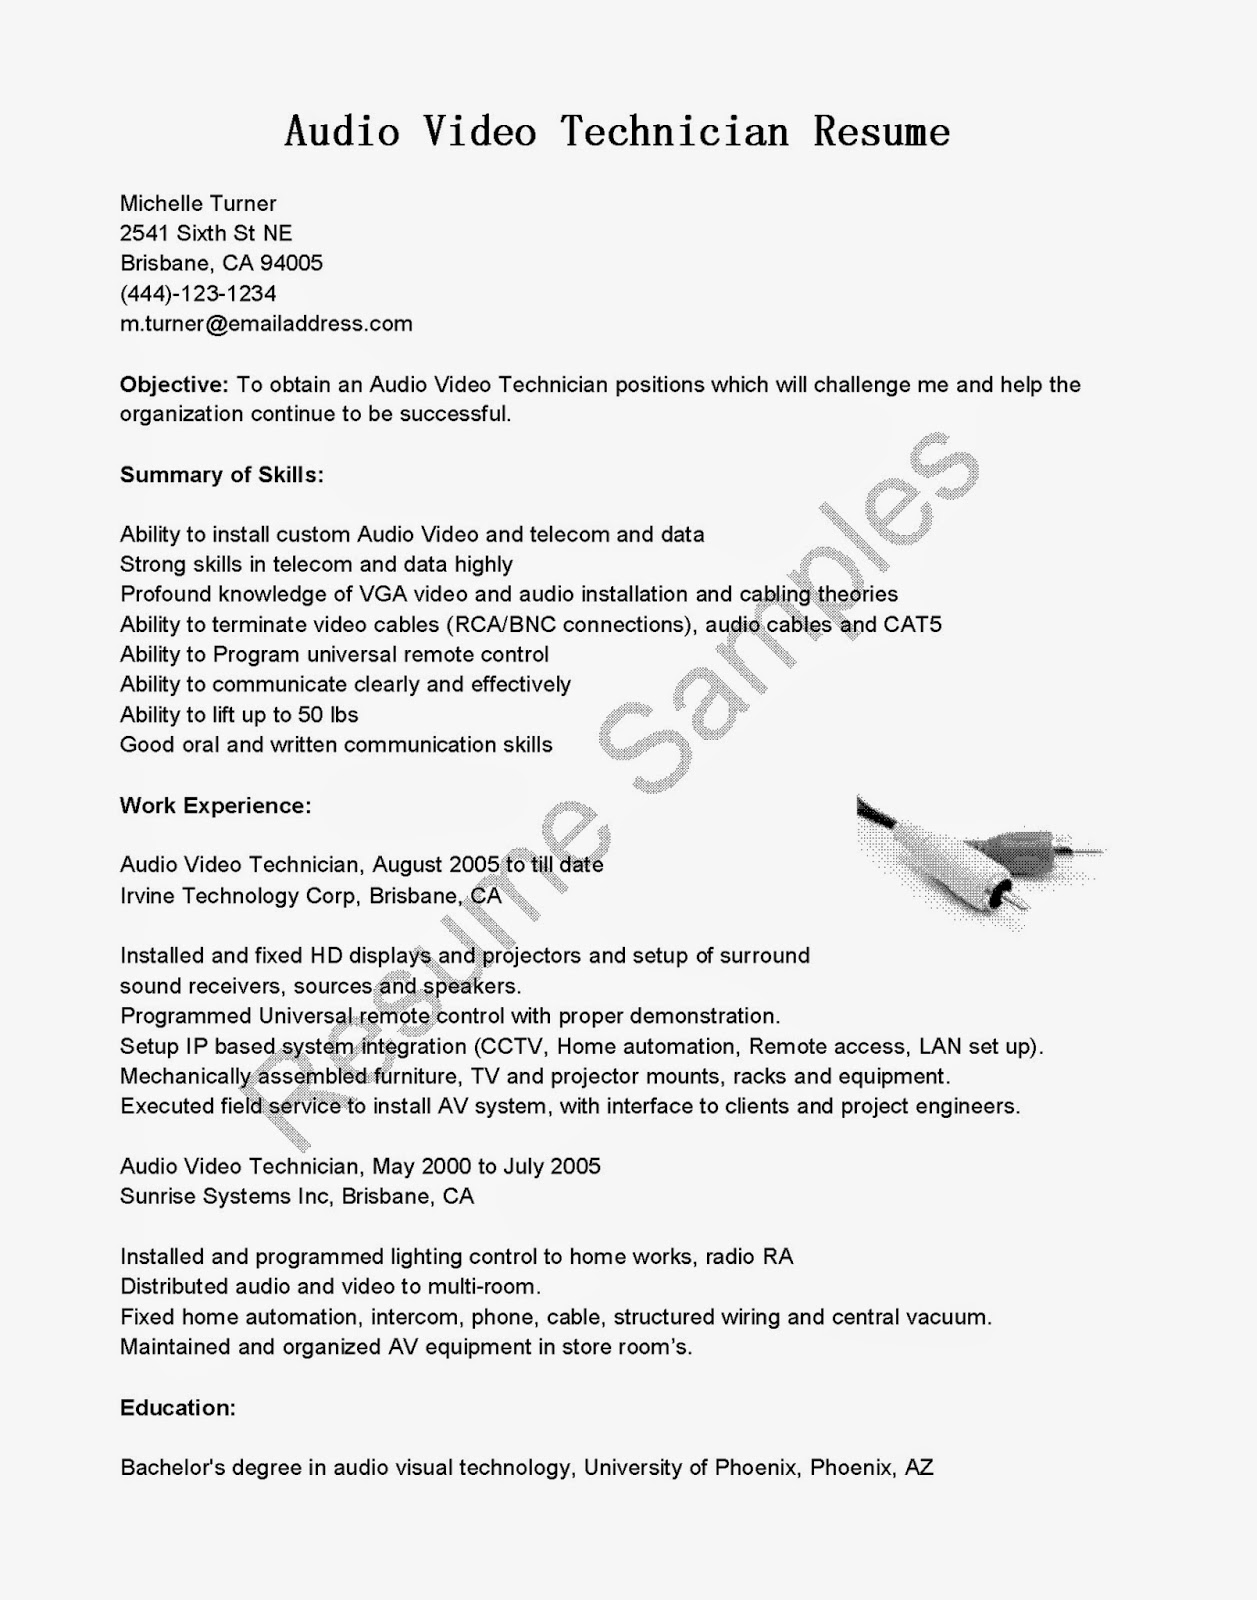 resume samples  audio video technician resume sample